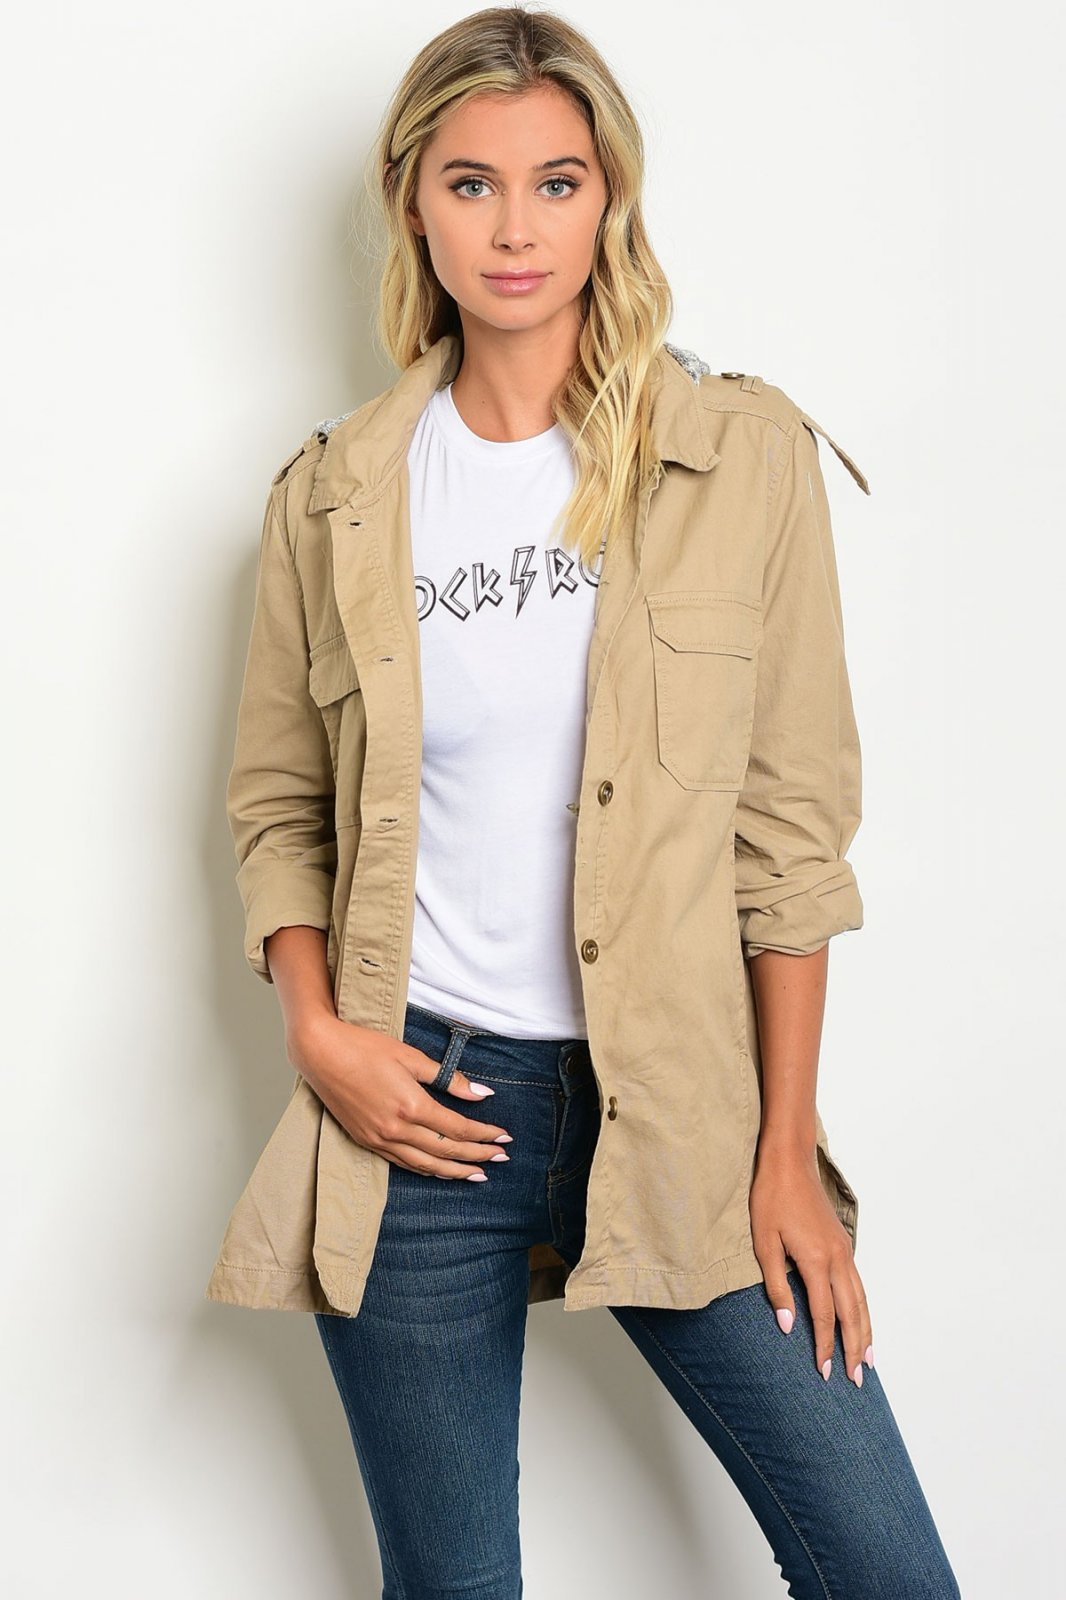 KHAKI GRAY UTILITY JACKET